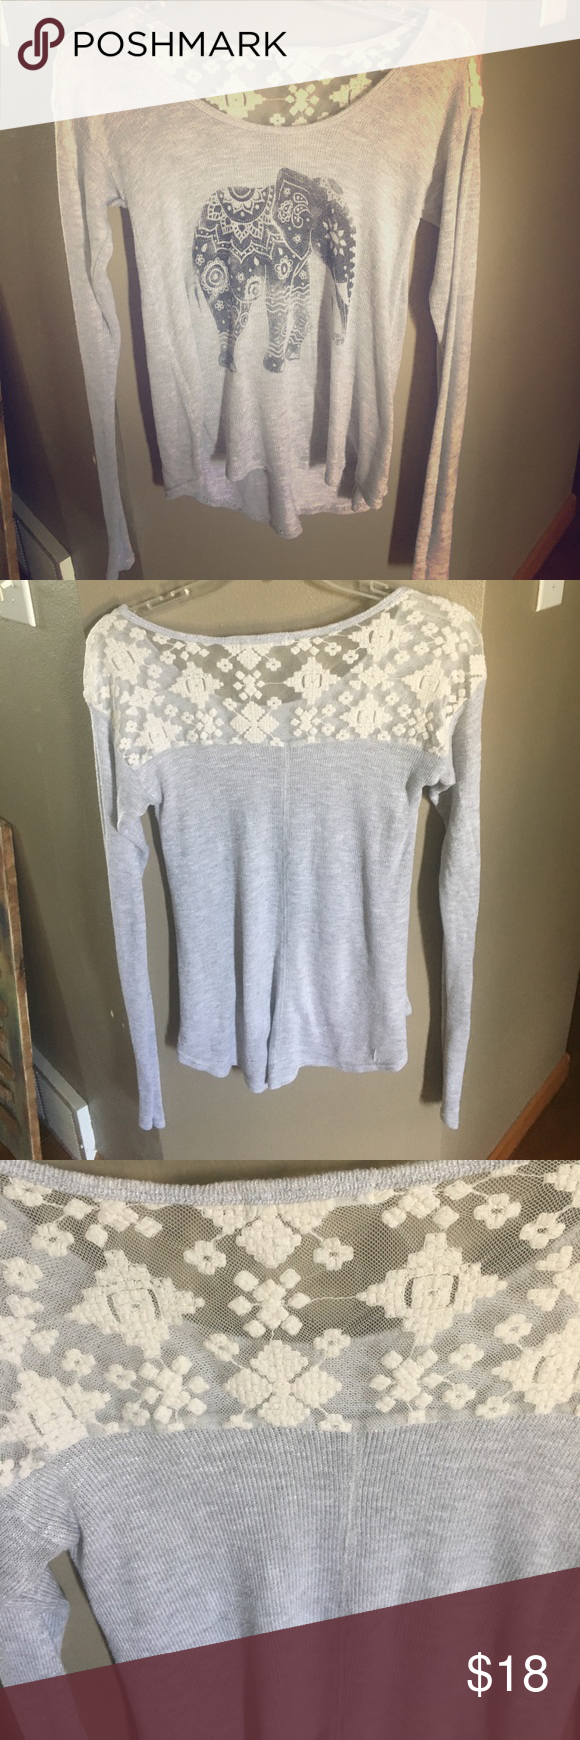 Long sleeve elephant Sweater This shirt is so adorable. Gray with elephant graphic on the front and a really cool lace yoke  in the back. This is a really lightweight sweater that can be easily worn from summer into fall junie and jade Sweaters Crew & Scoop Necks